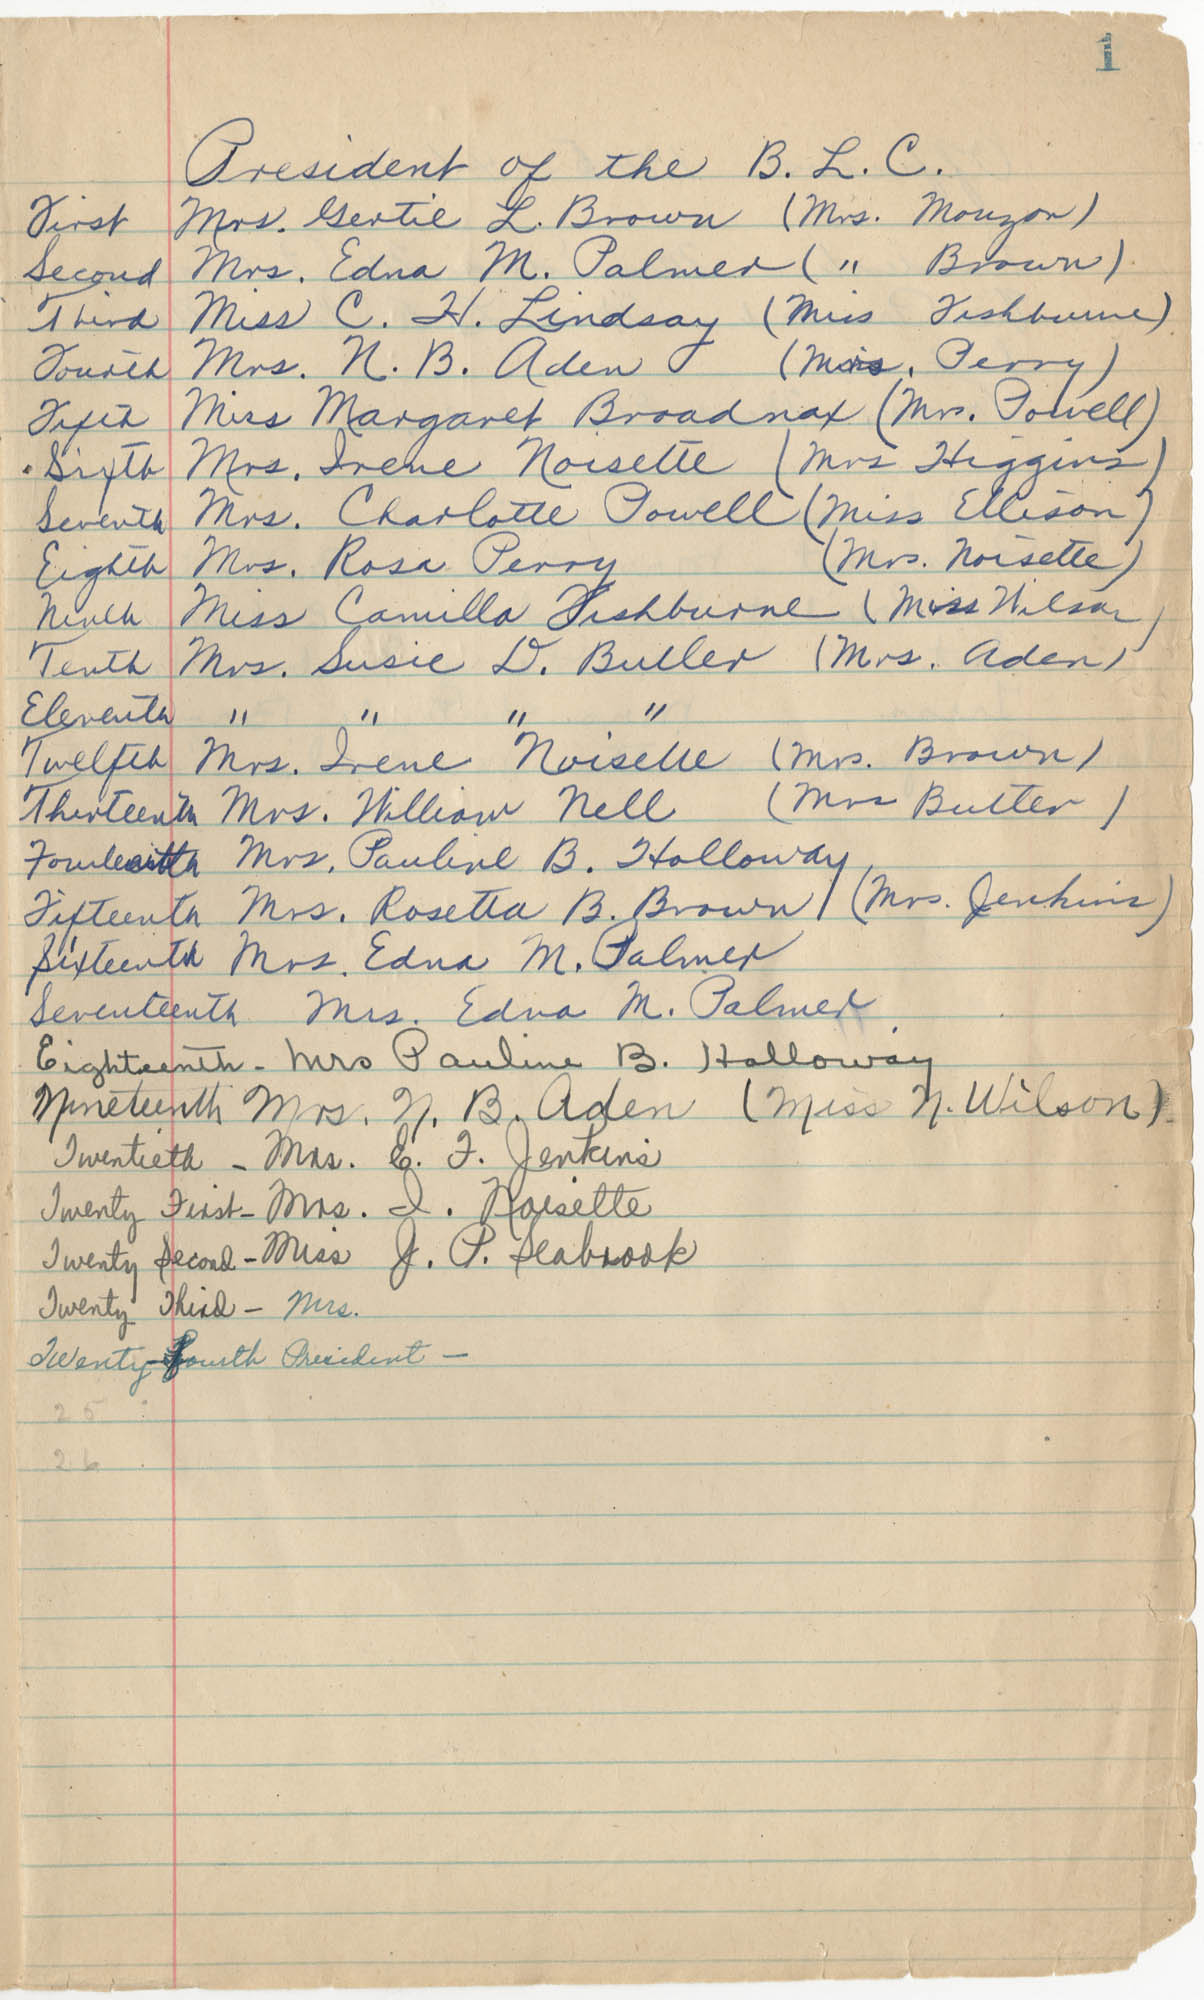 Minutes, Book Lovers' Club, 1944-1958, Page 1